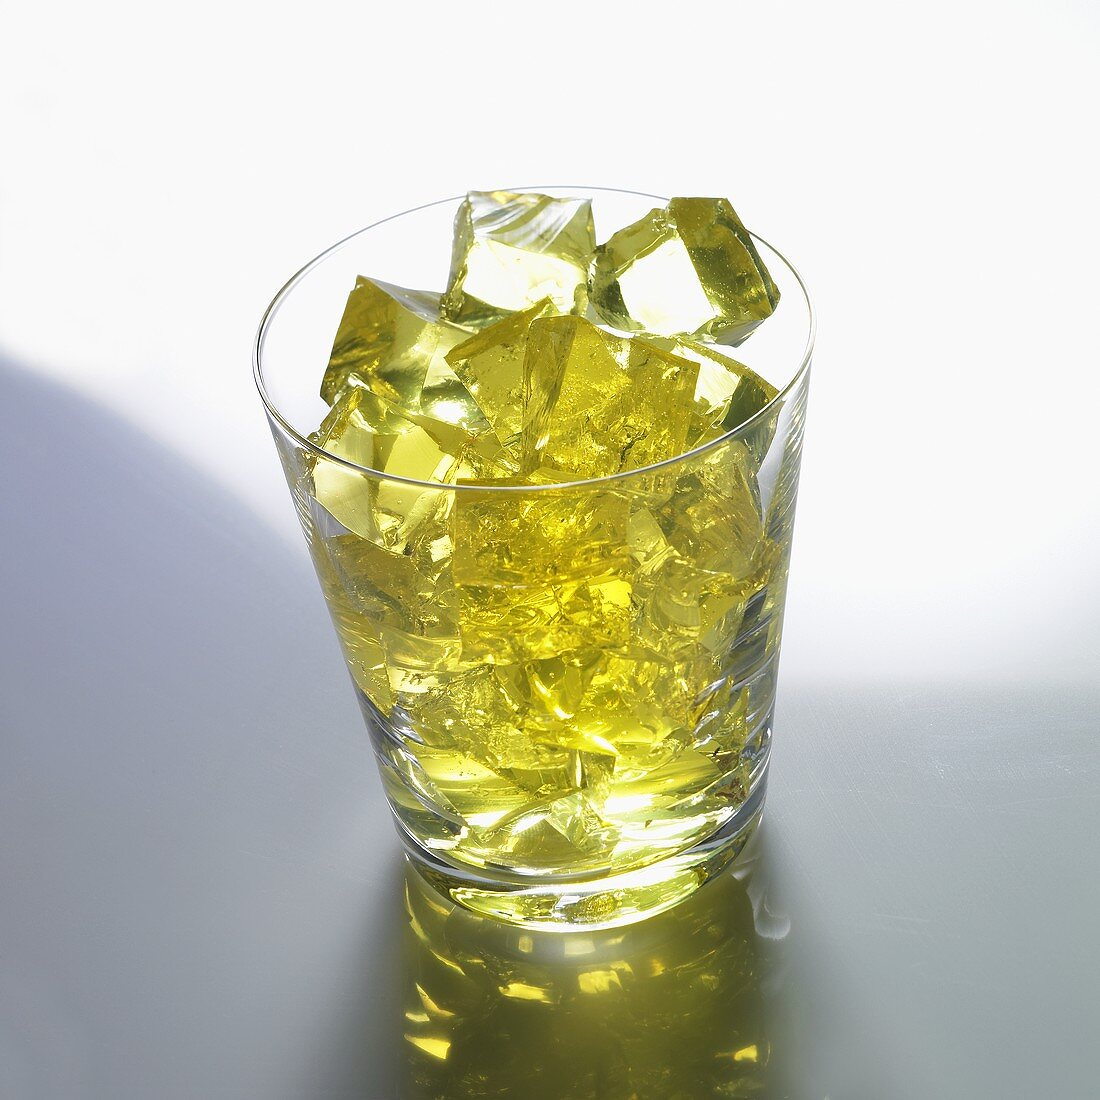 Yellow jelly cubes in a glass